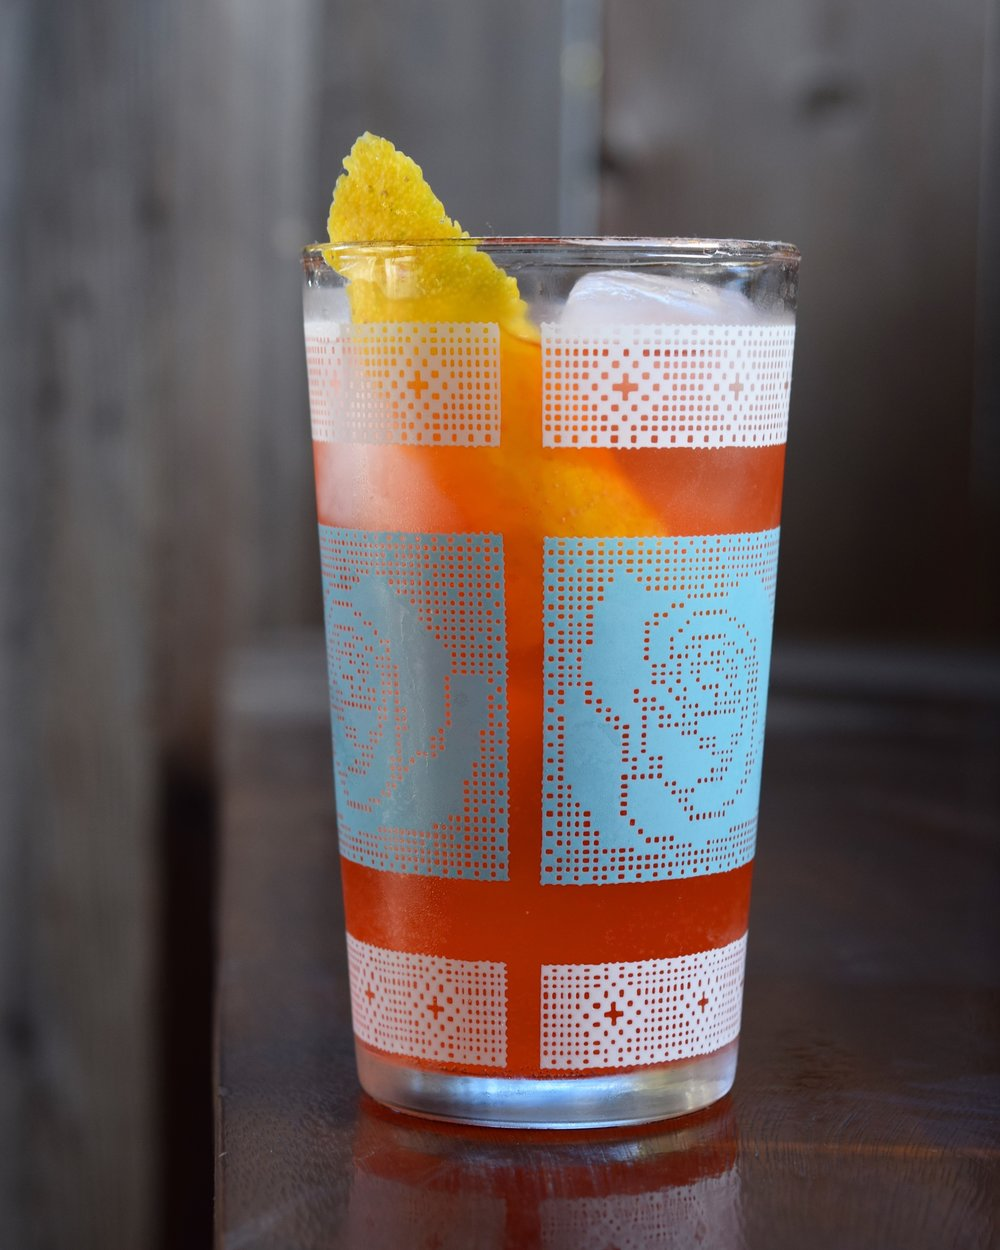 LAYOVER - 1.5 oz gin1/2 oz campari1/2 oz nostrum pineapple turmeric ginger shrub1/2 oz lemon juice2-3 oz soda waterdirections: build in a tall glass with ice.